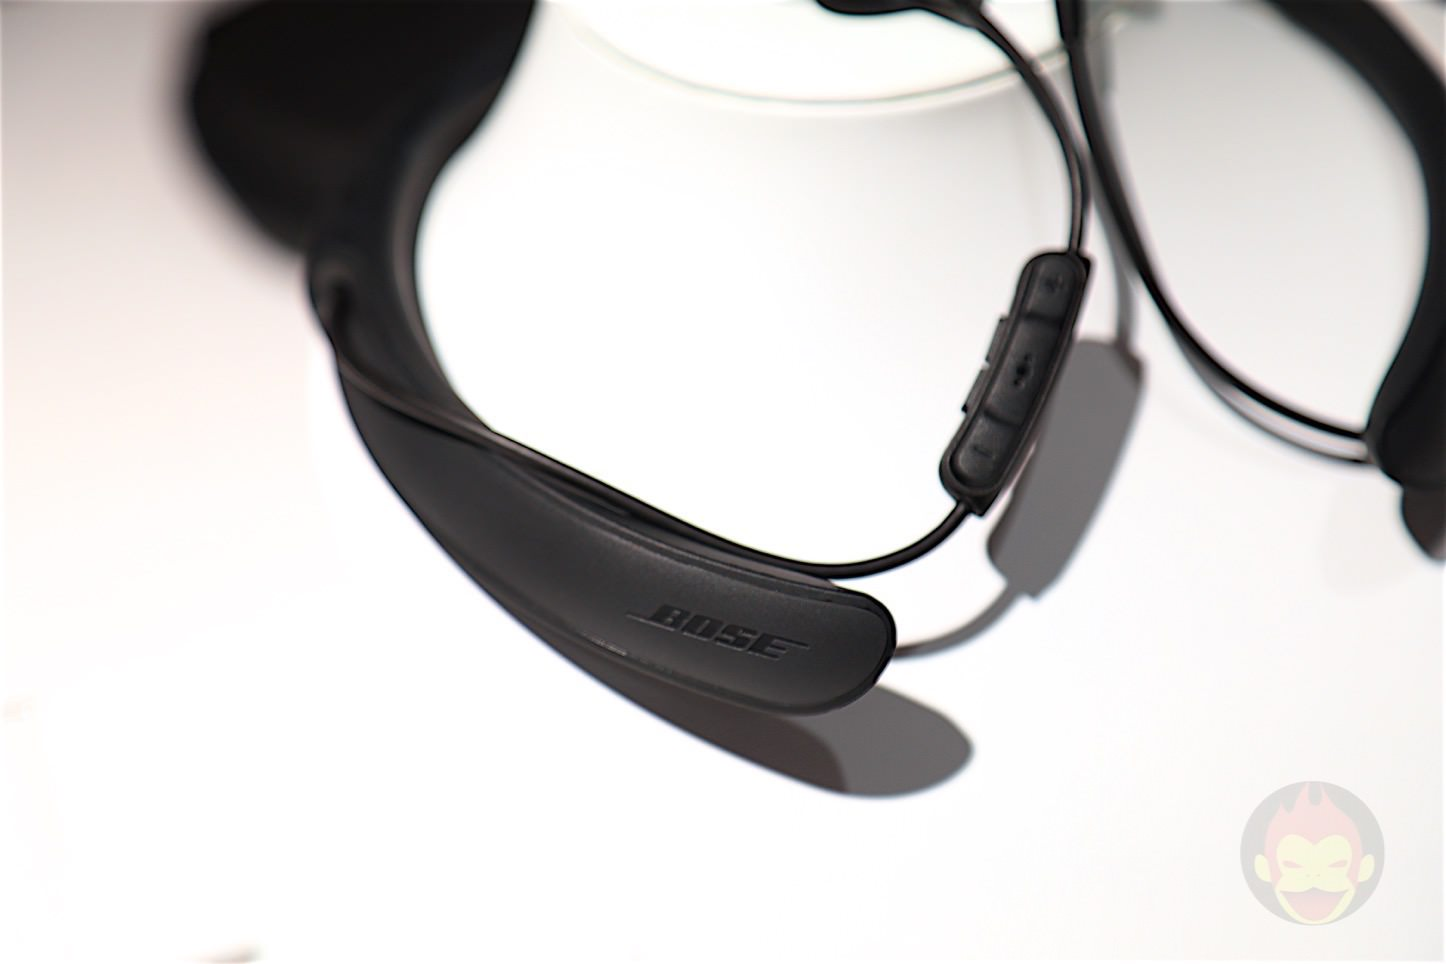 Bose-QuietComfort-30-Review-04.jpg